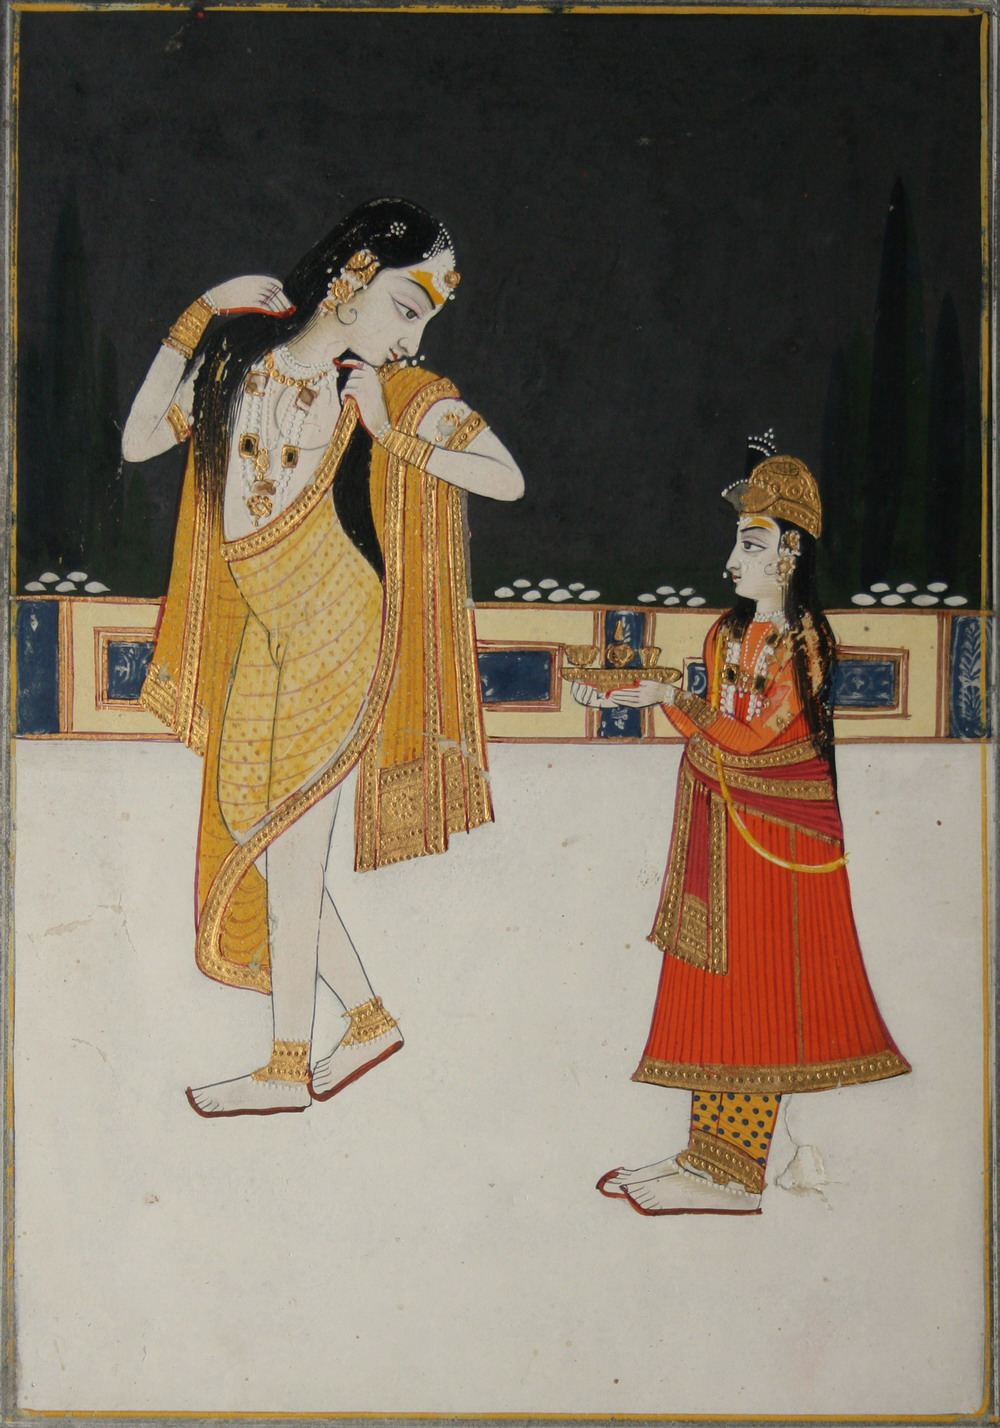 Courtesan on a Palace Terrace at Night, an Attendant Serving Wine - Rajput Painting, Bikaner, Mid 19th Century